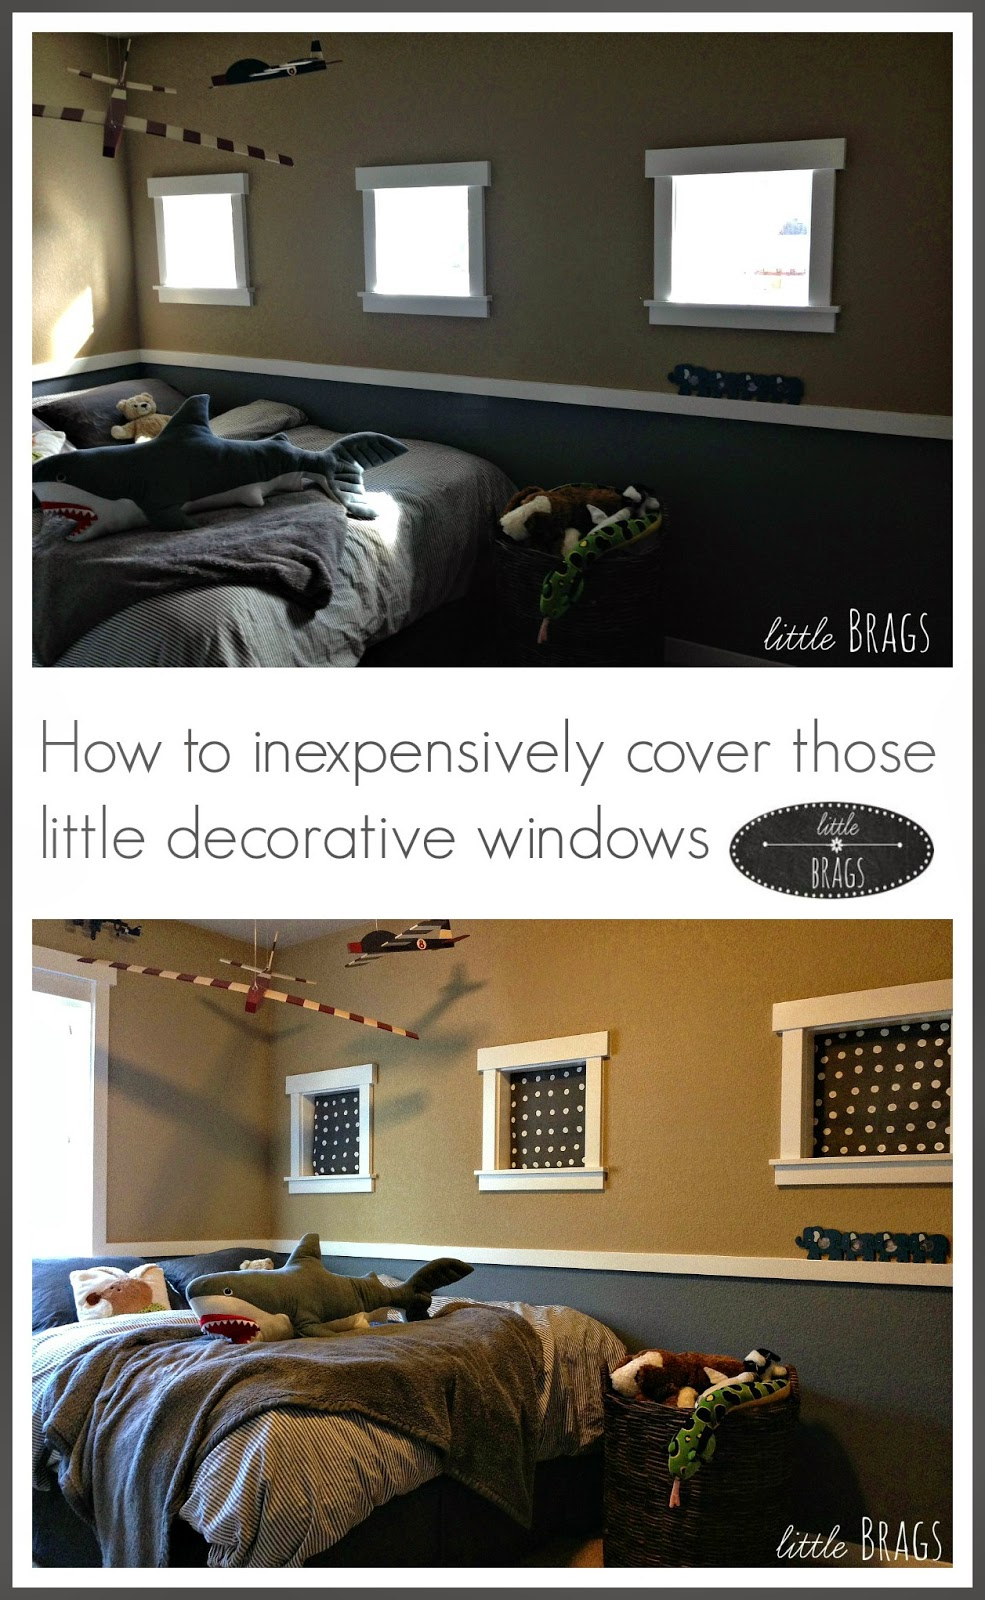 Little Brags How To Inexpensively Cover Little Decorative Windows